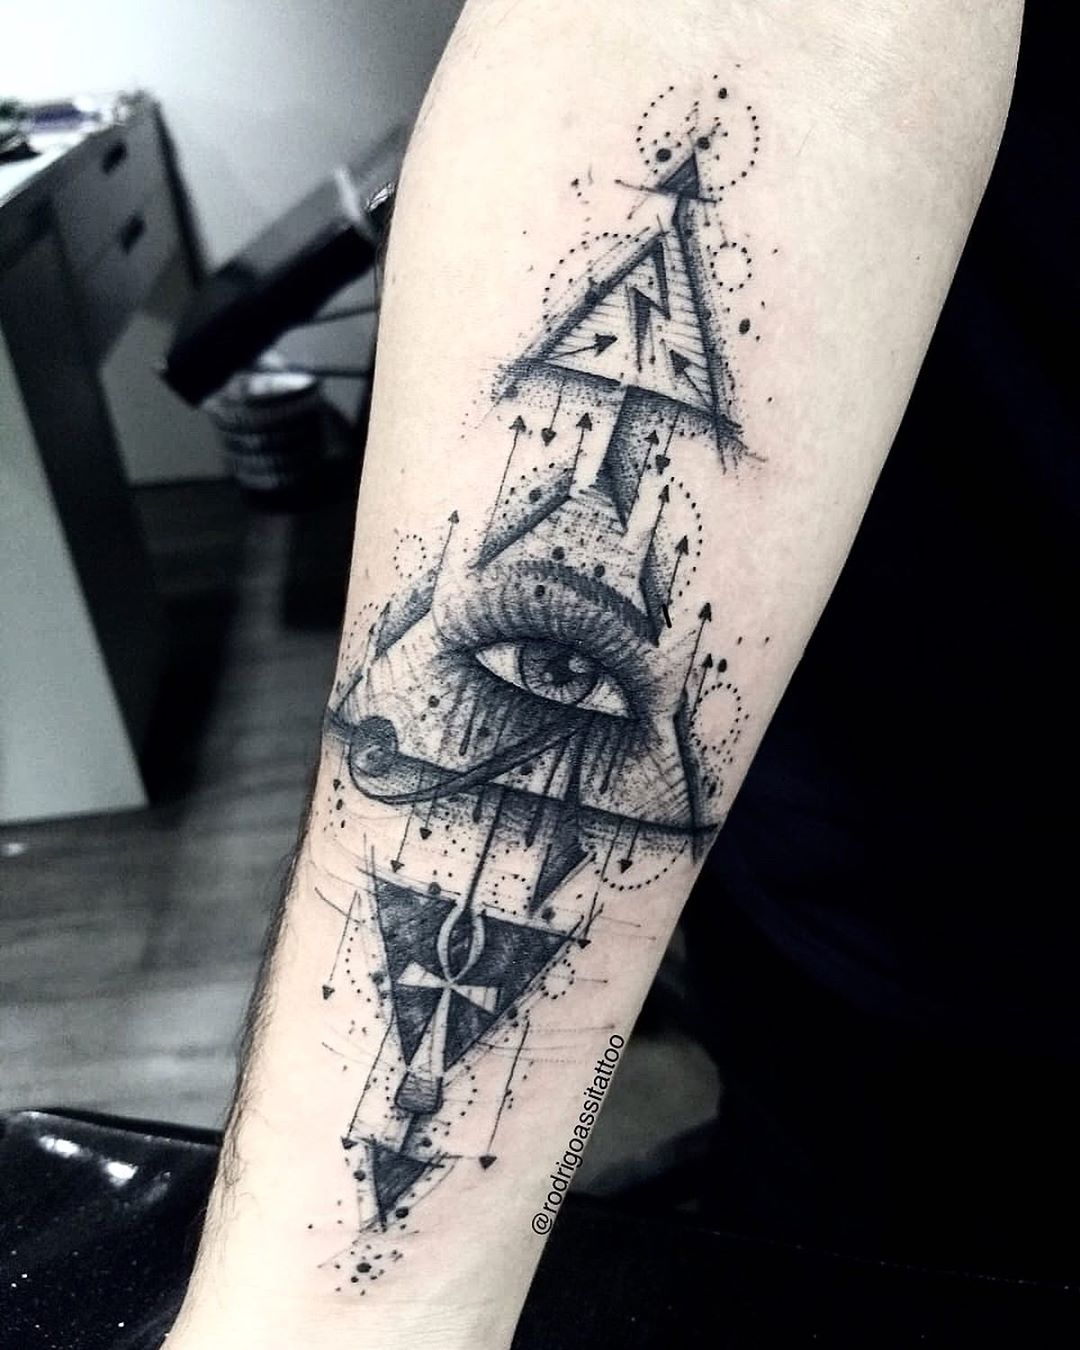 Ra eye tattoo by Rodrigo Assi